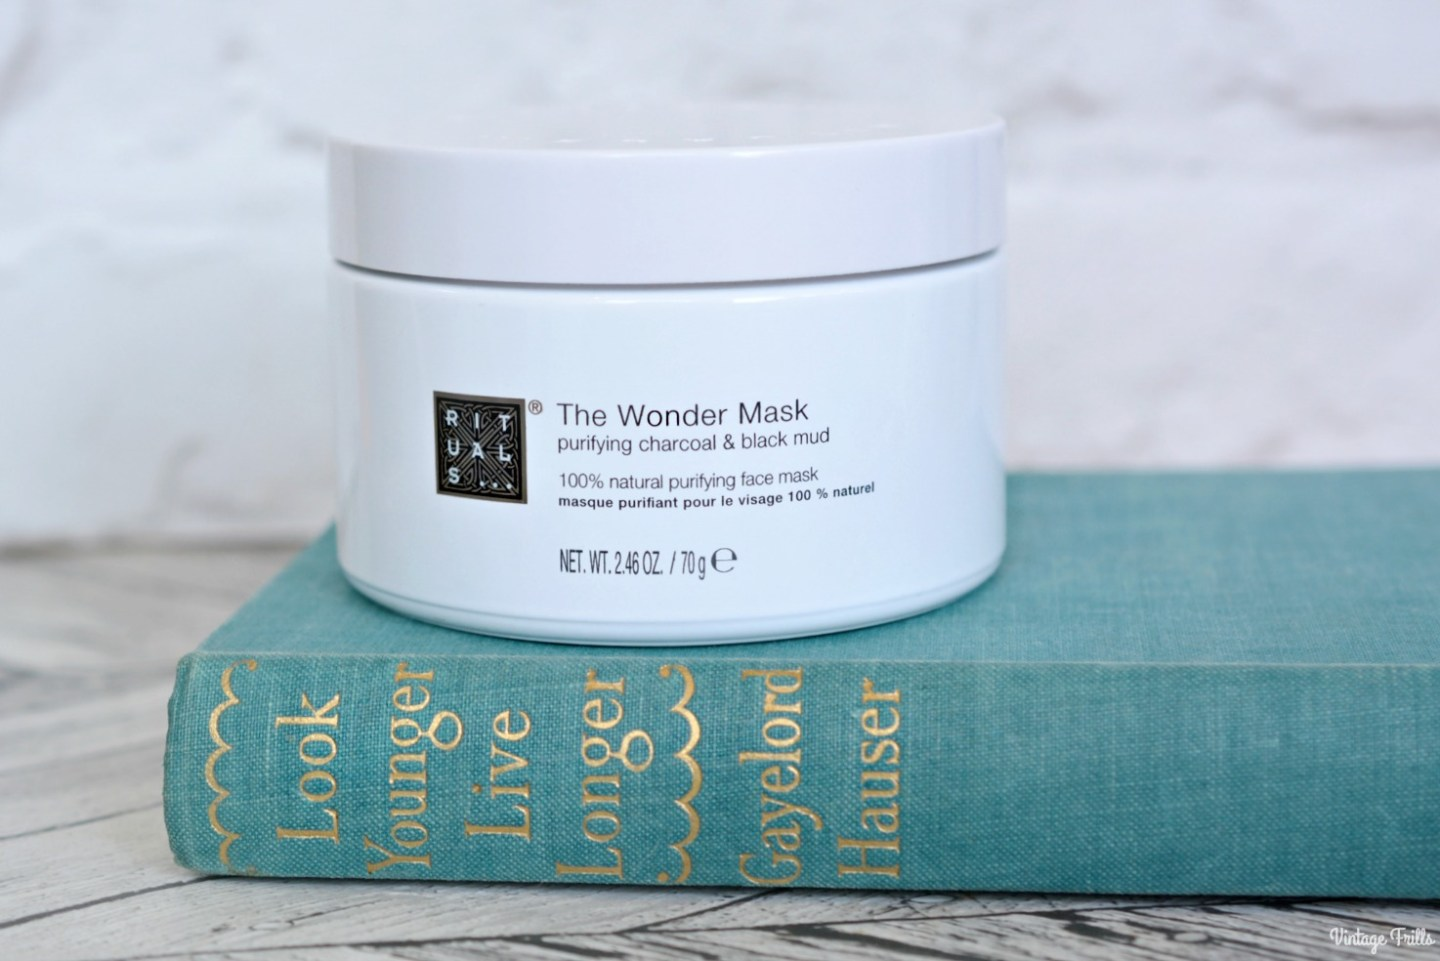 February 2018 Beauty Favourites | Rituals The Wonder Mask